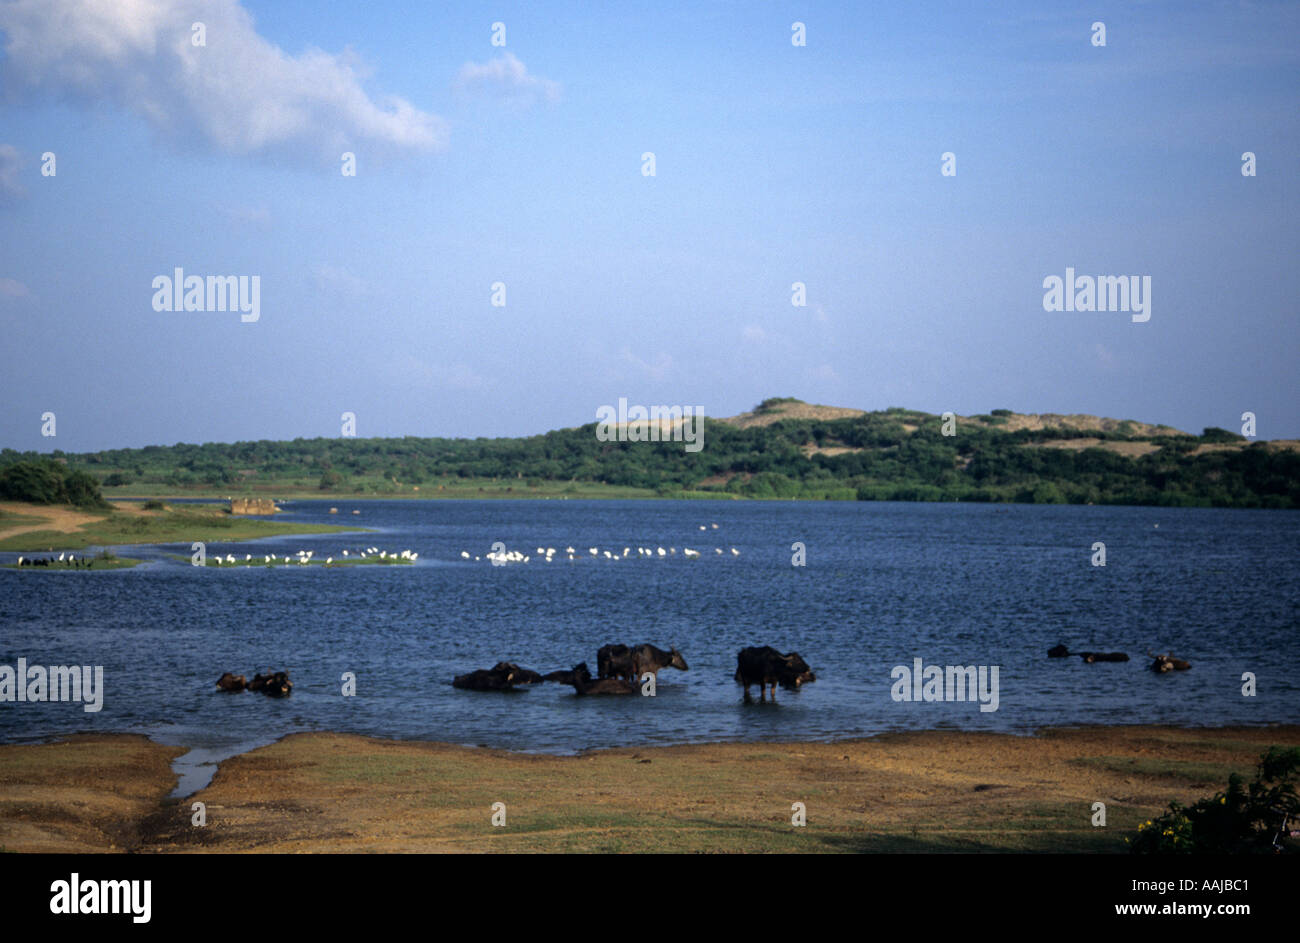 Yala National Park Sri Lanka - Stock Image